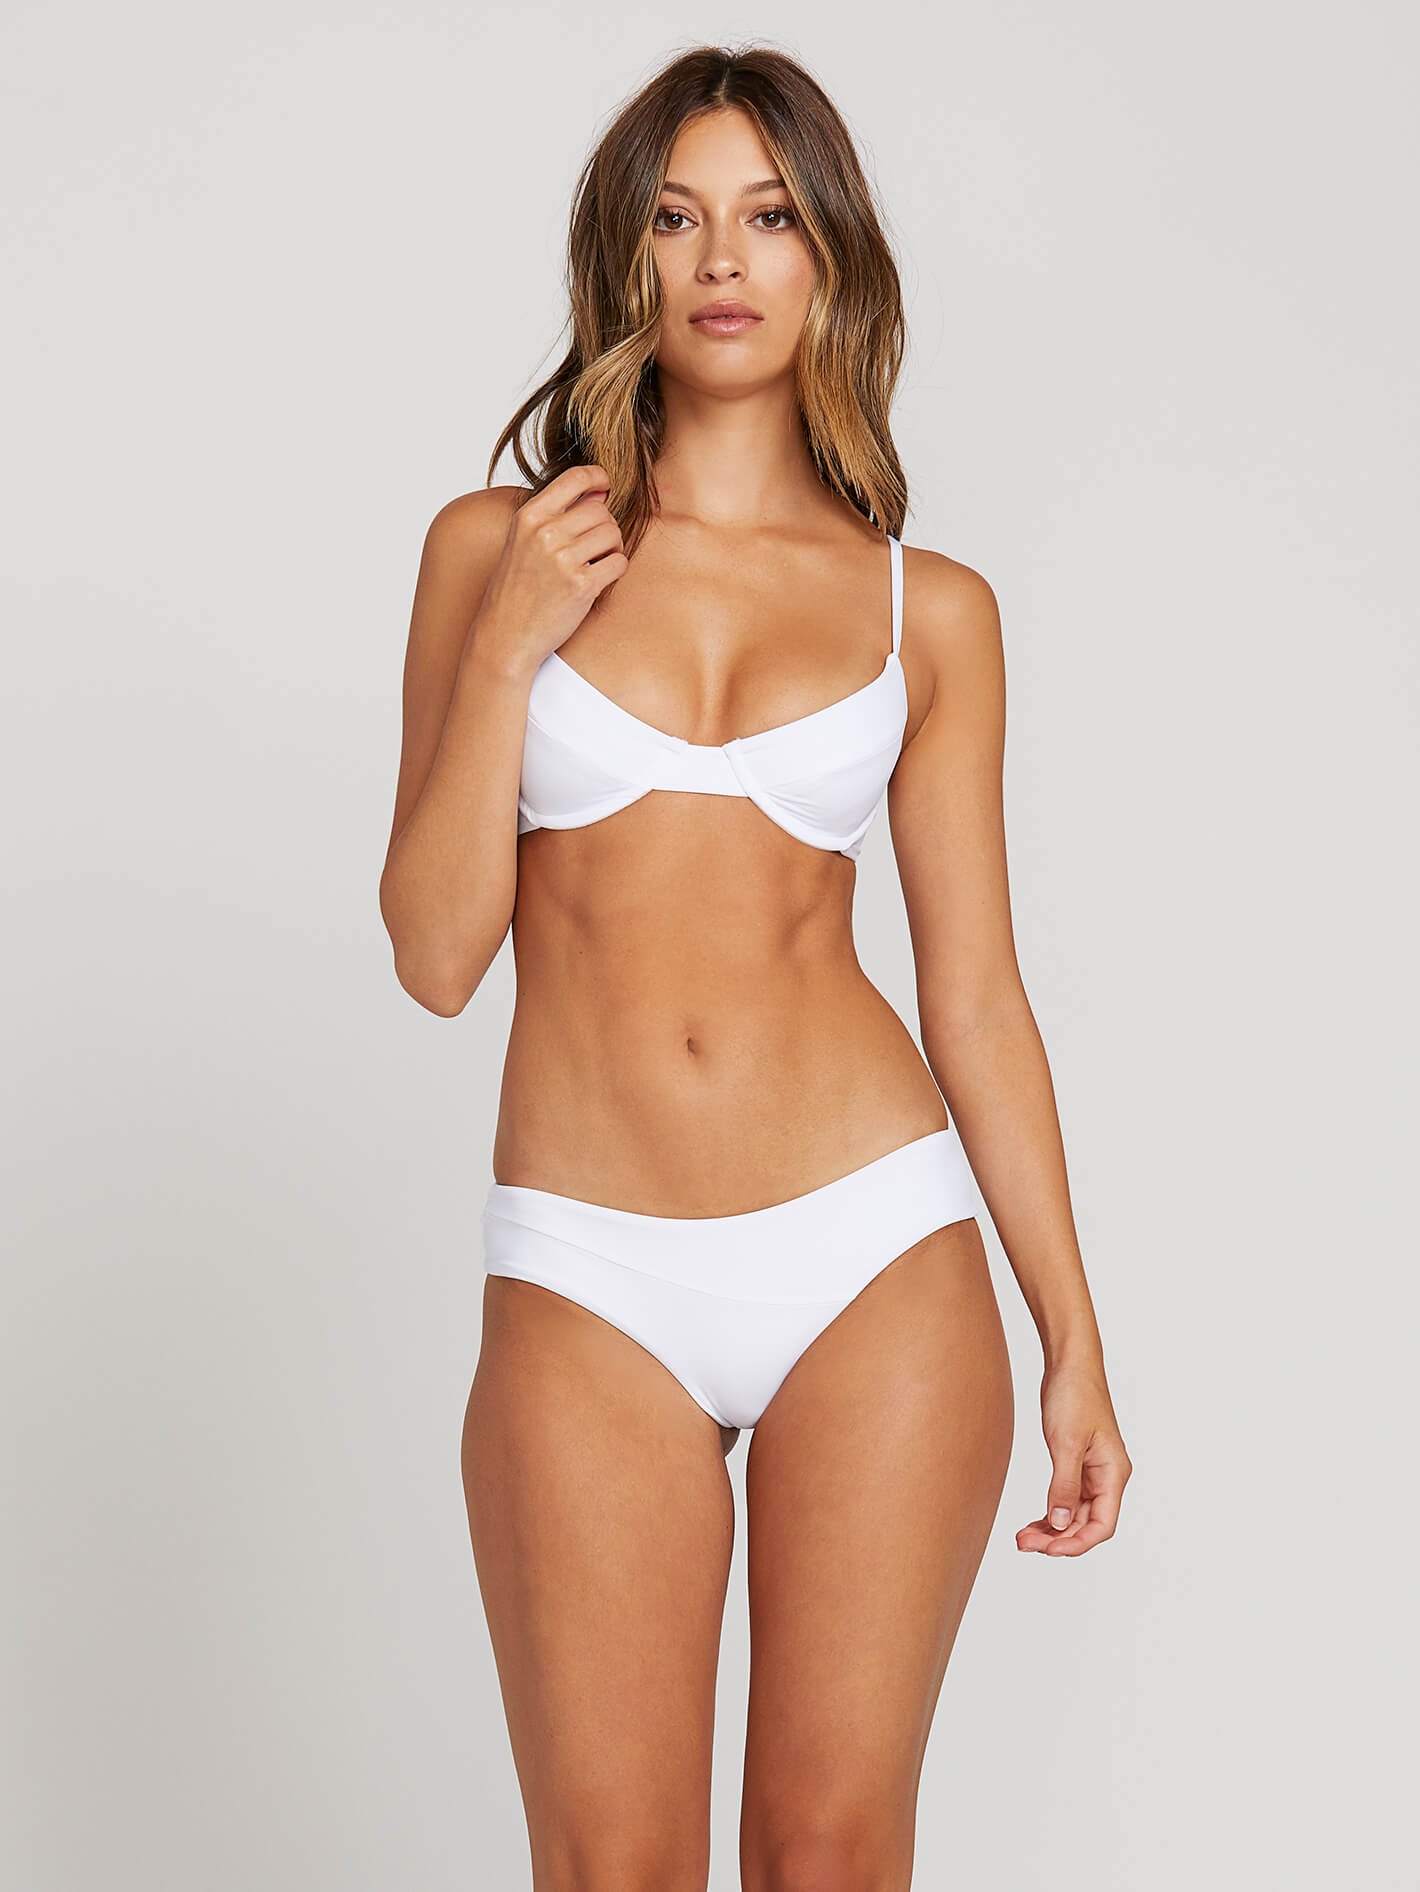 eb1d53606f61 Simply Seamless Cheeky Bottoms - White in WHITE - Alternative View